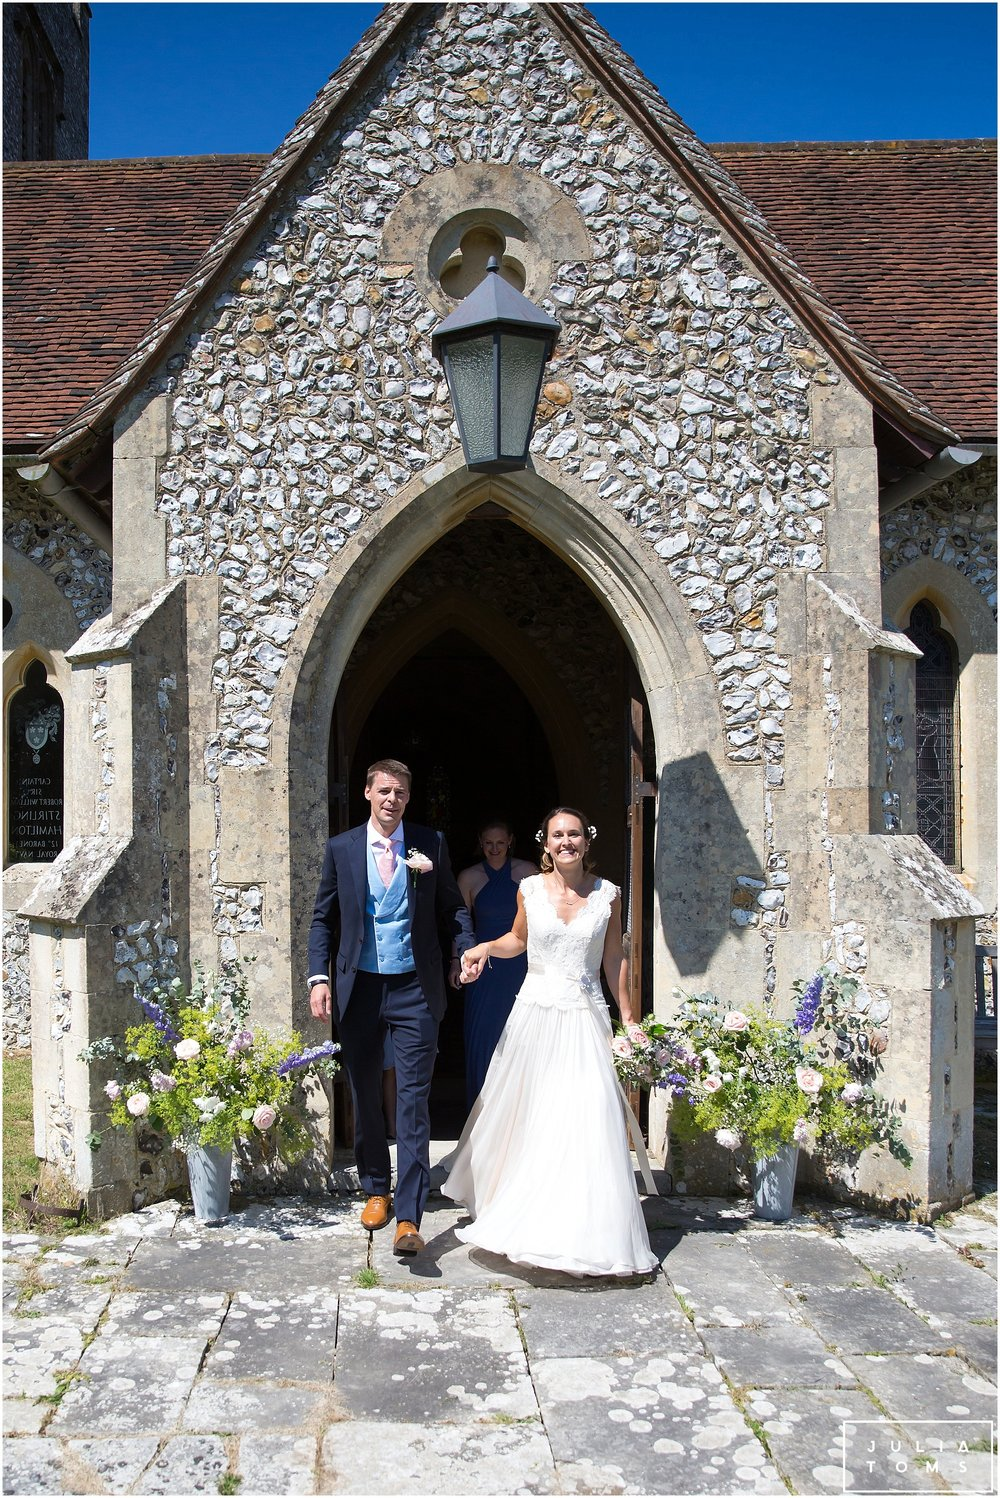 julia_toms_chichester_wedding_photographer_portsmouth_032.jpg